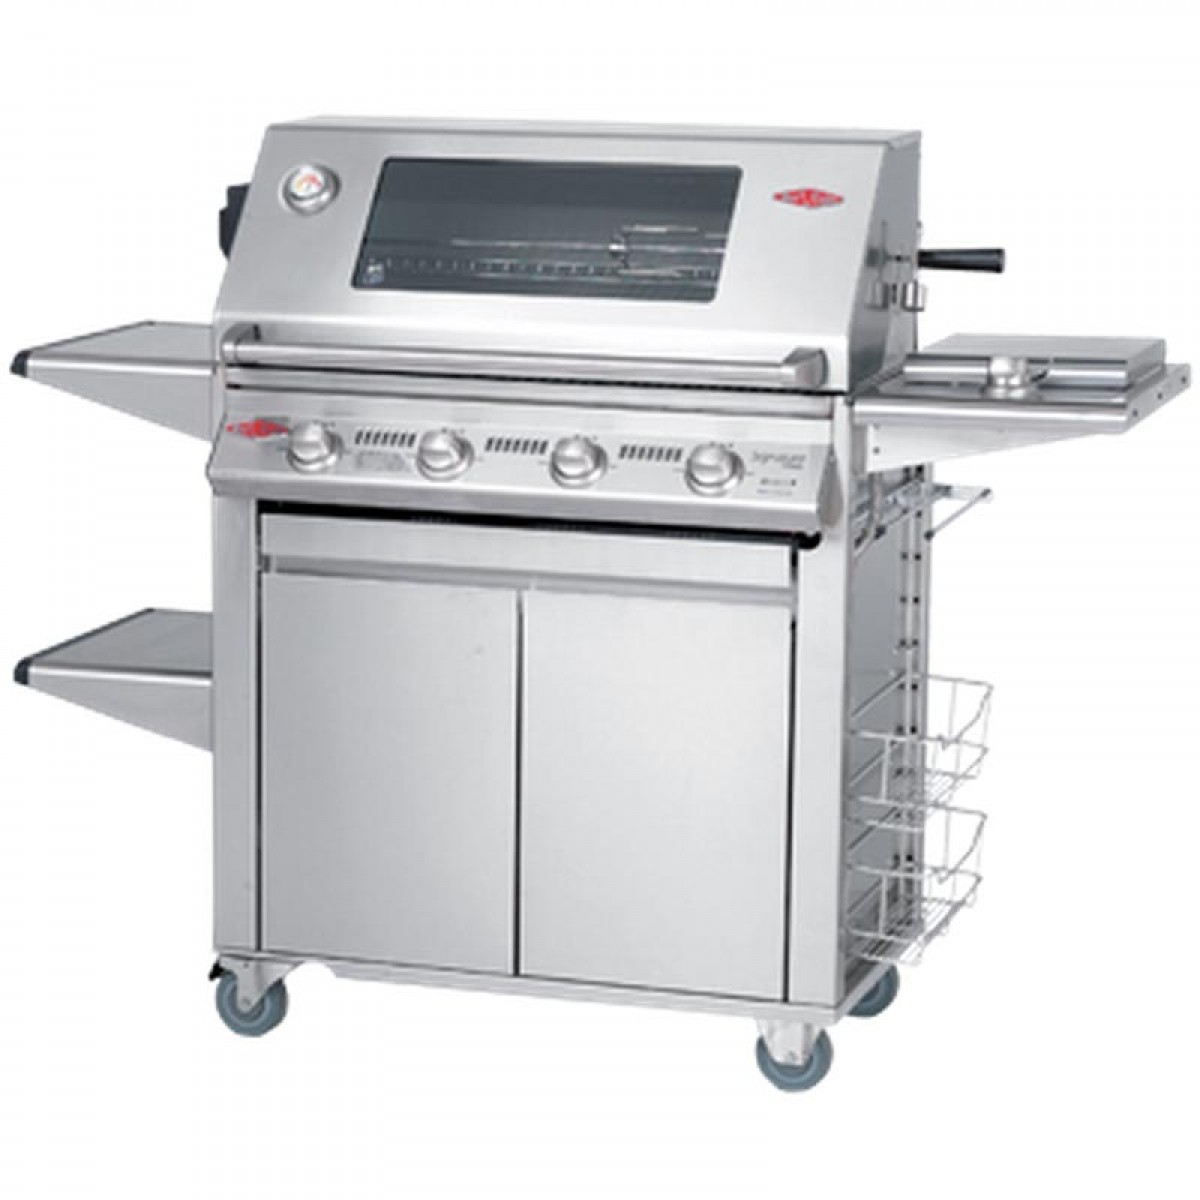 Beefeater Signature 3000ss Series Propane Lp Gas Barbecue